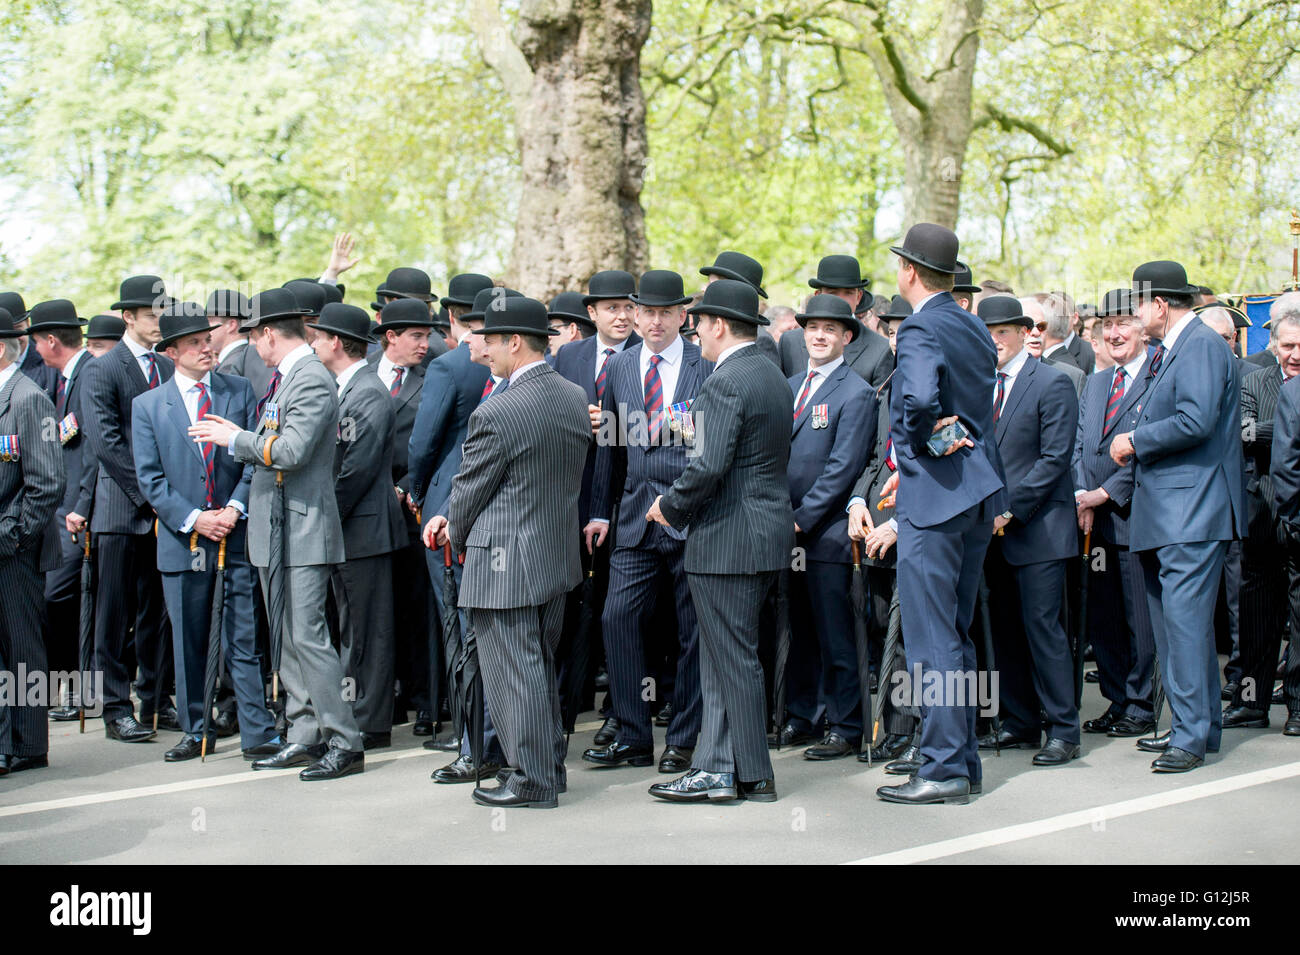 Hyde park. Pic Shows The Annual parade of the Combined Cavalry Old Comrades consisting of serving and former Cavalry - Stock Image